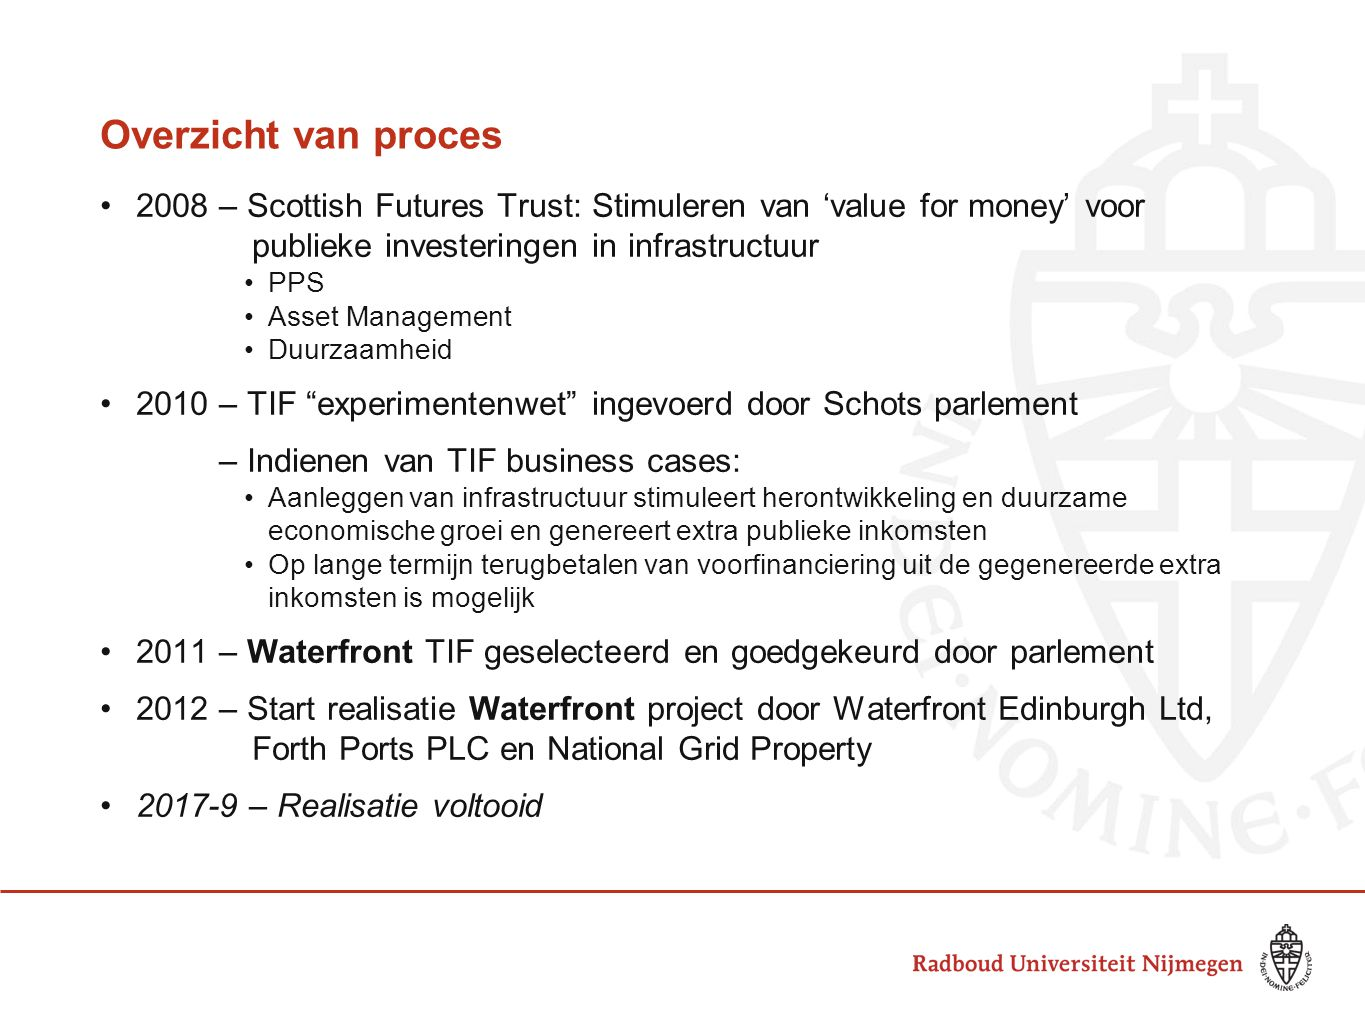 Overzicht van proces 2008 – Scottish Futures Trust: Stimuleren van 'value for money' voor publieke investeringen in infrastructuur.